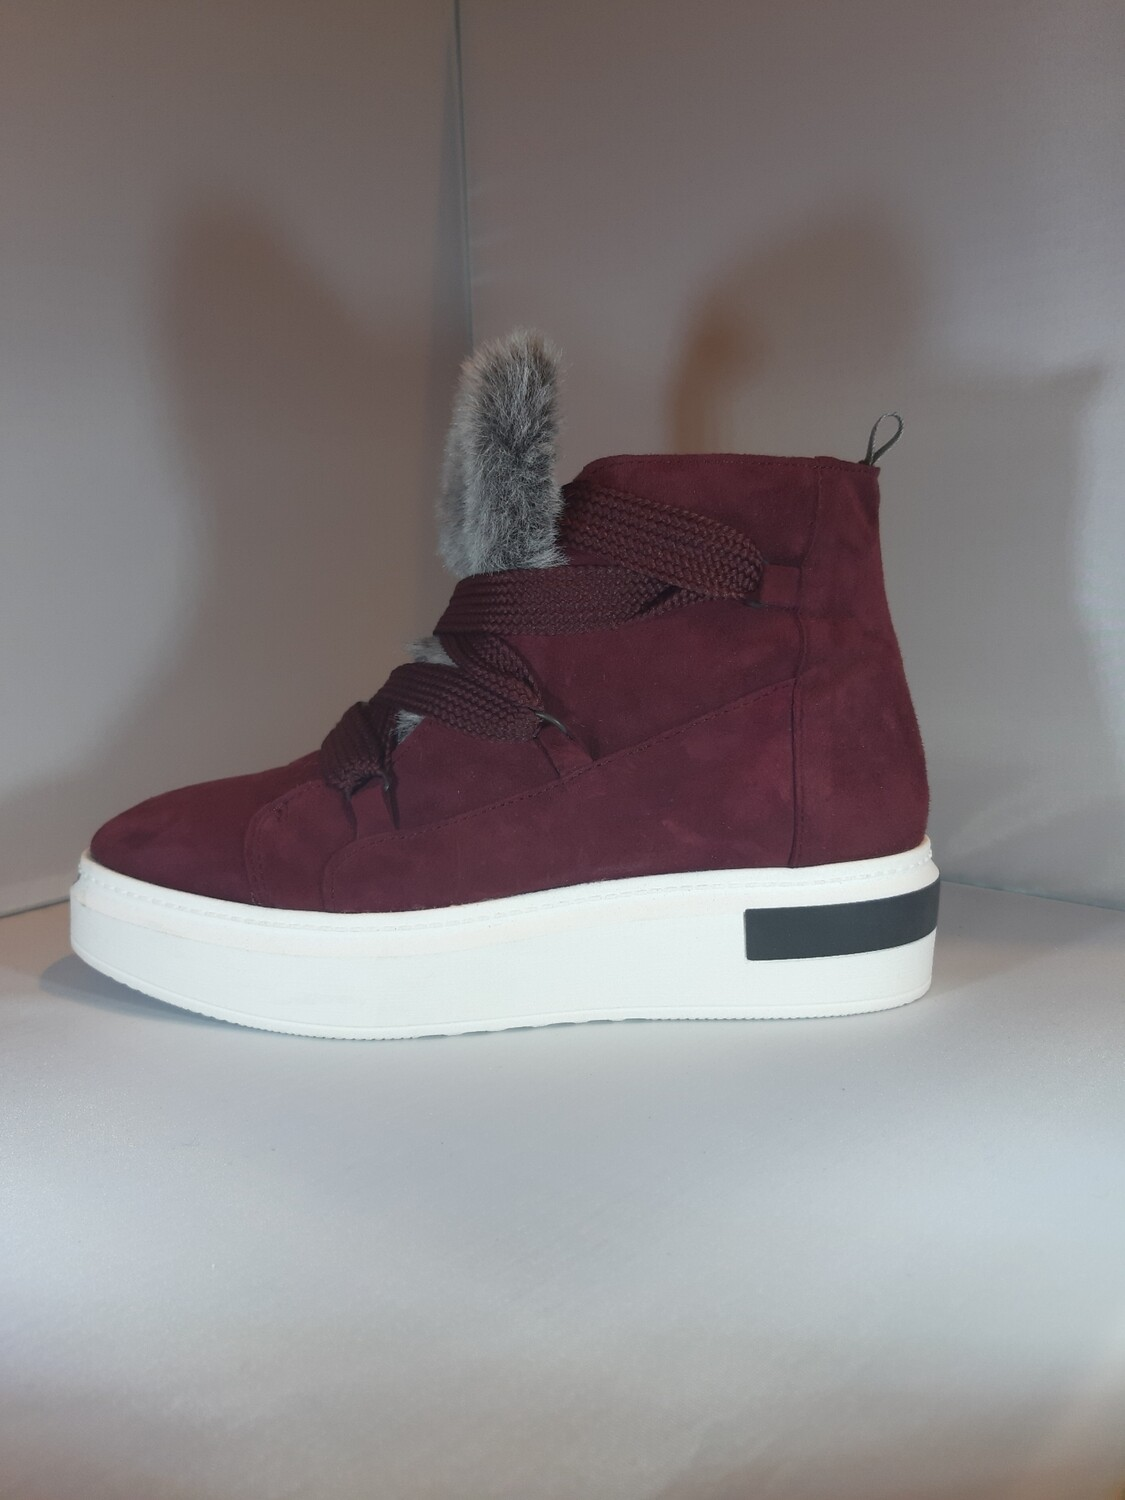 Cycleur de luxe | Botine bordeaux